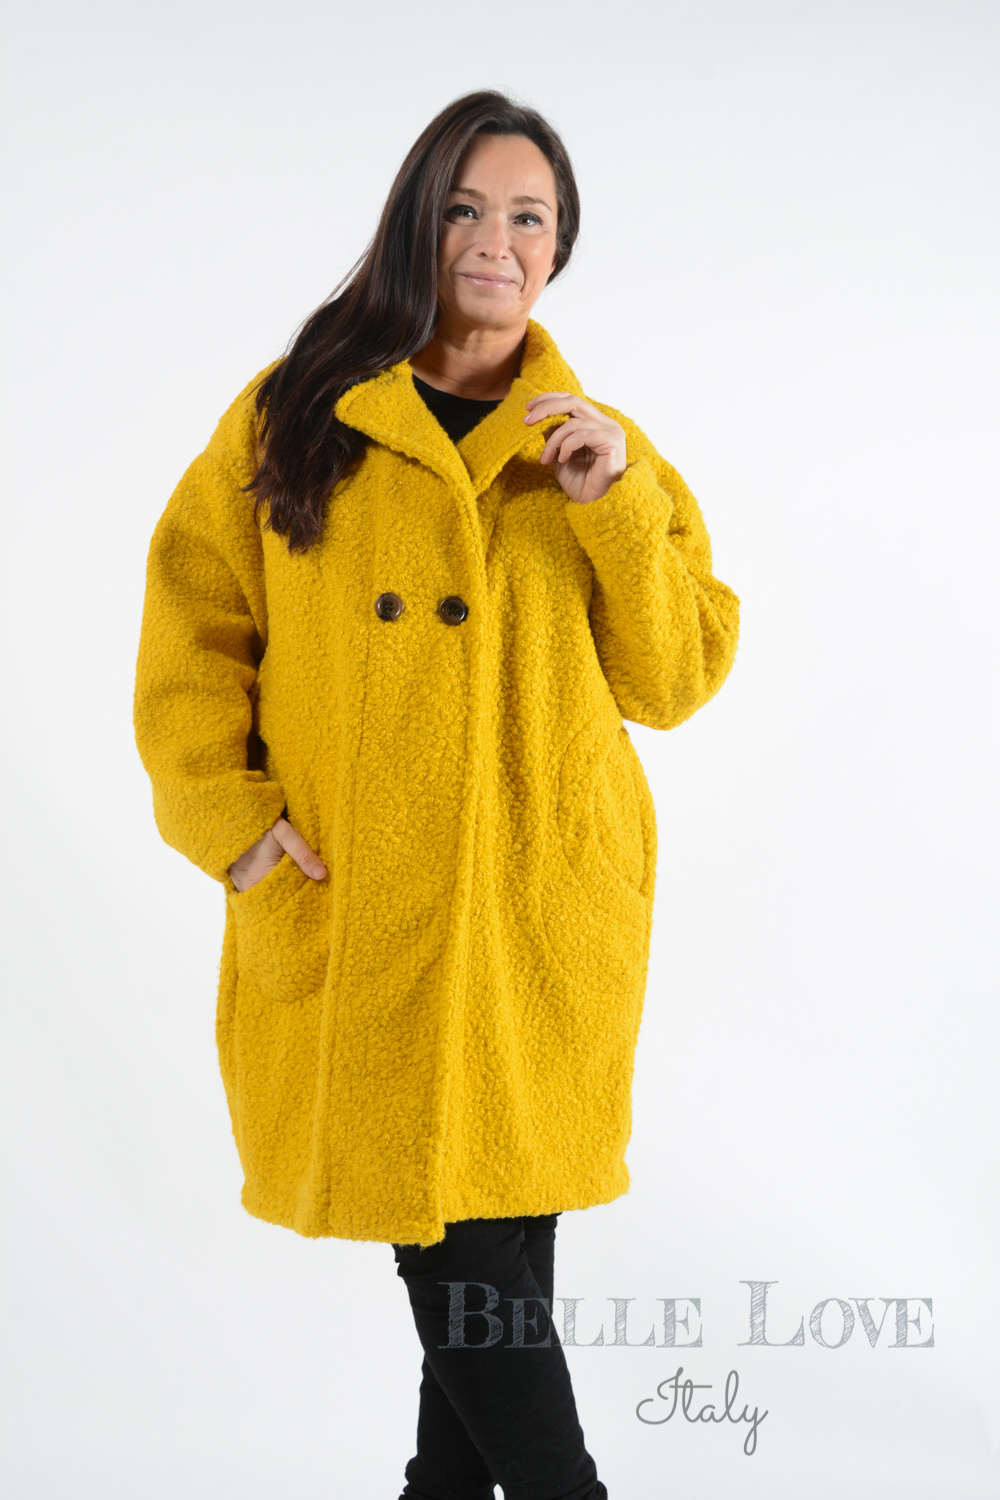 Belle Love Italy Castleford Teddy Coat